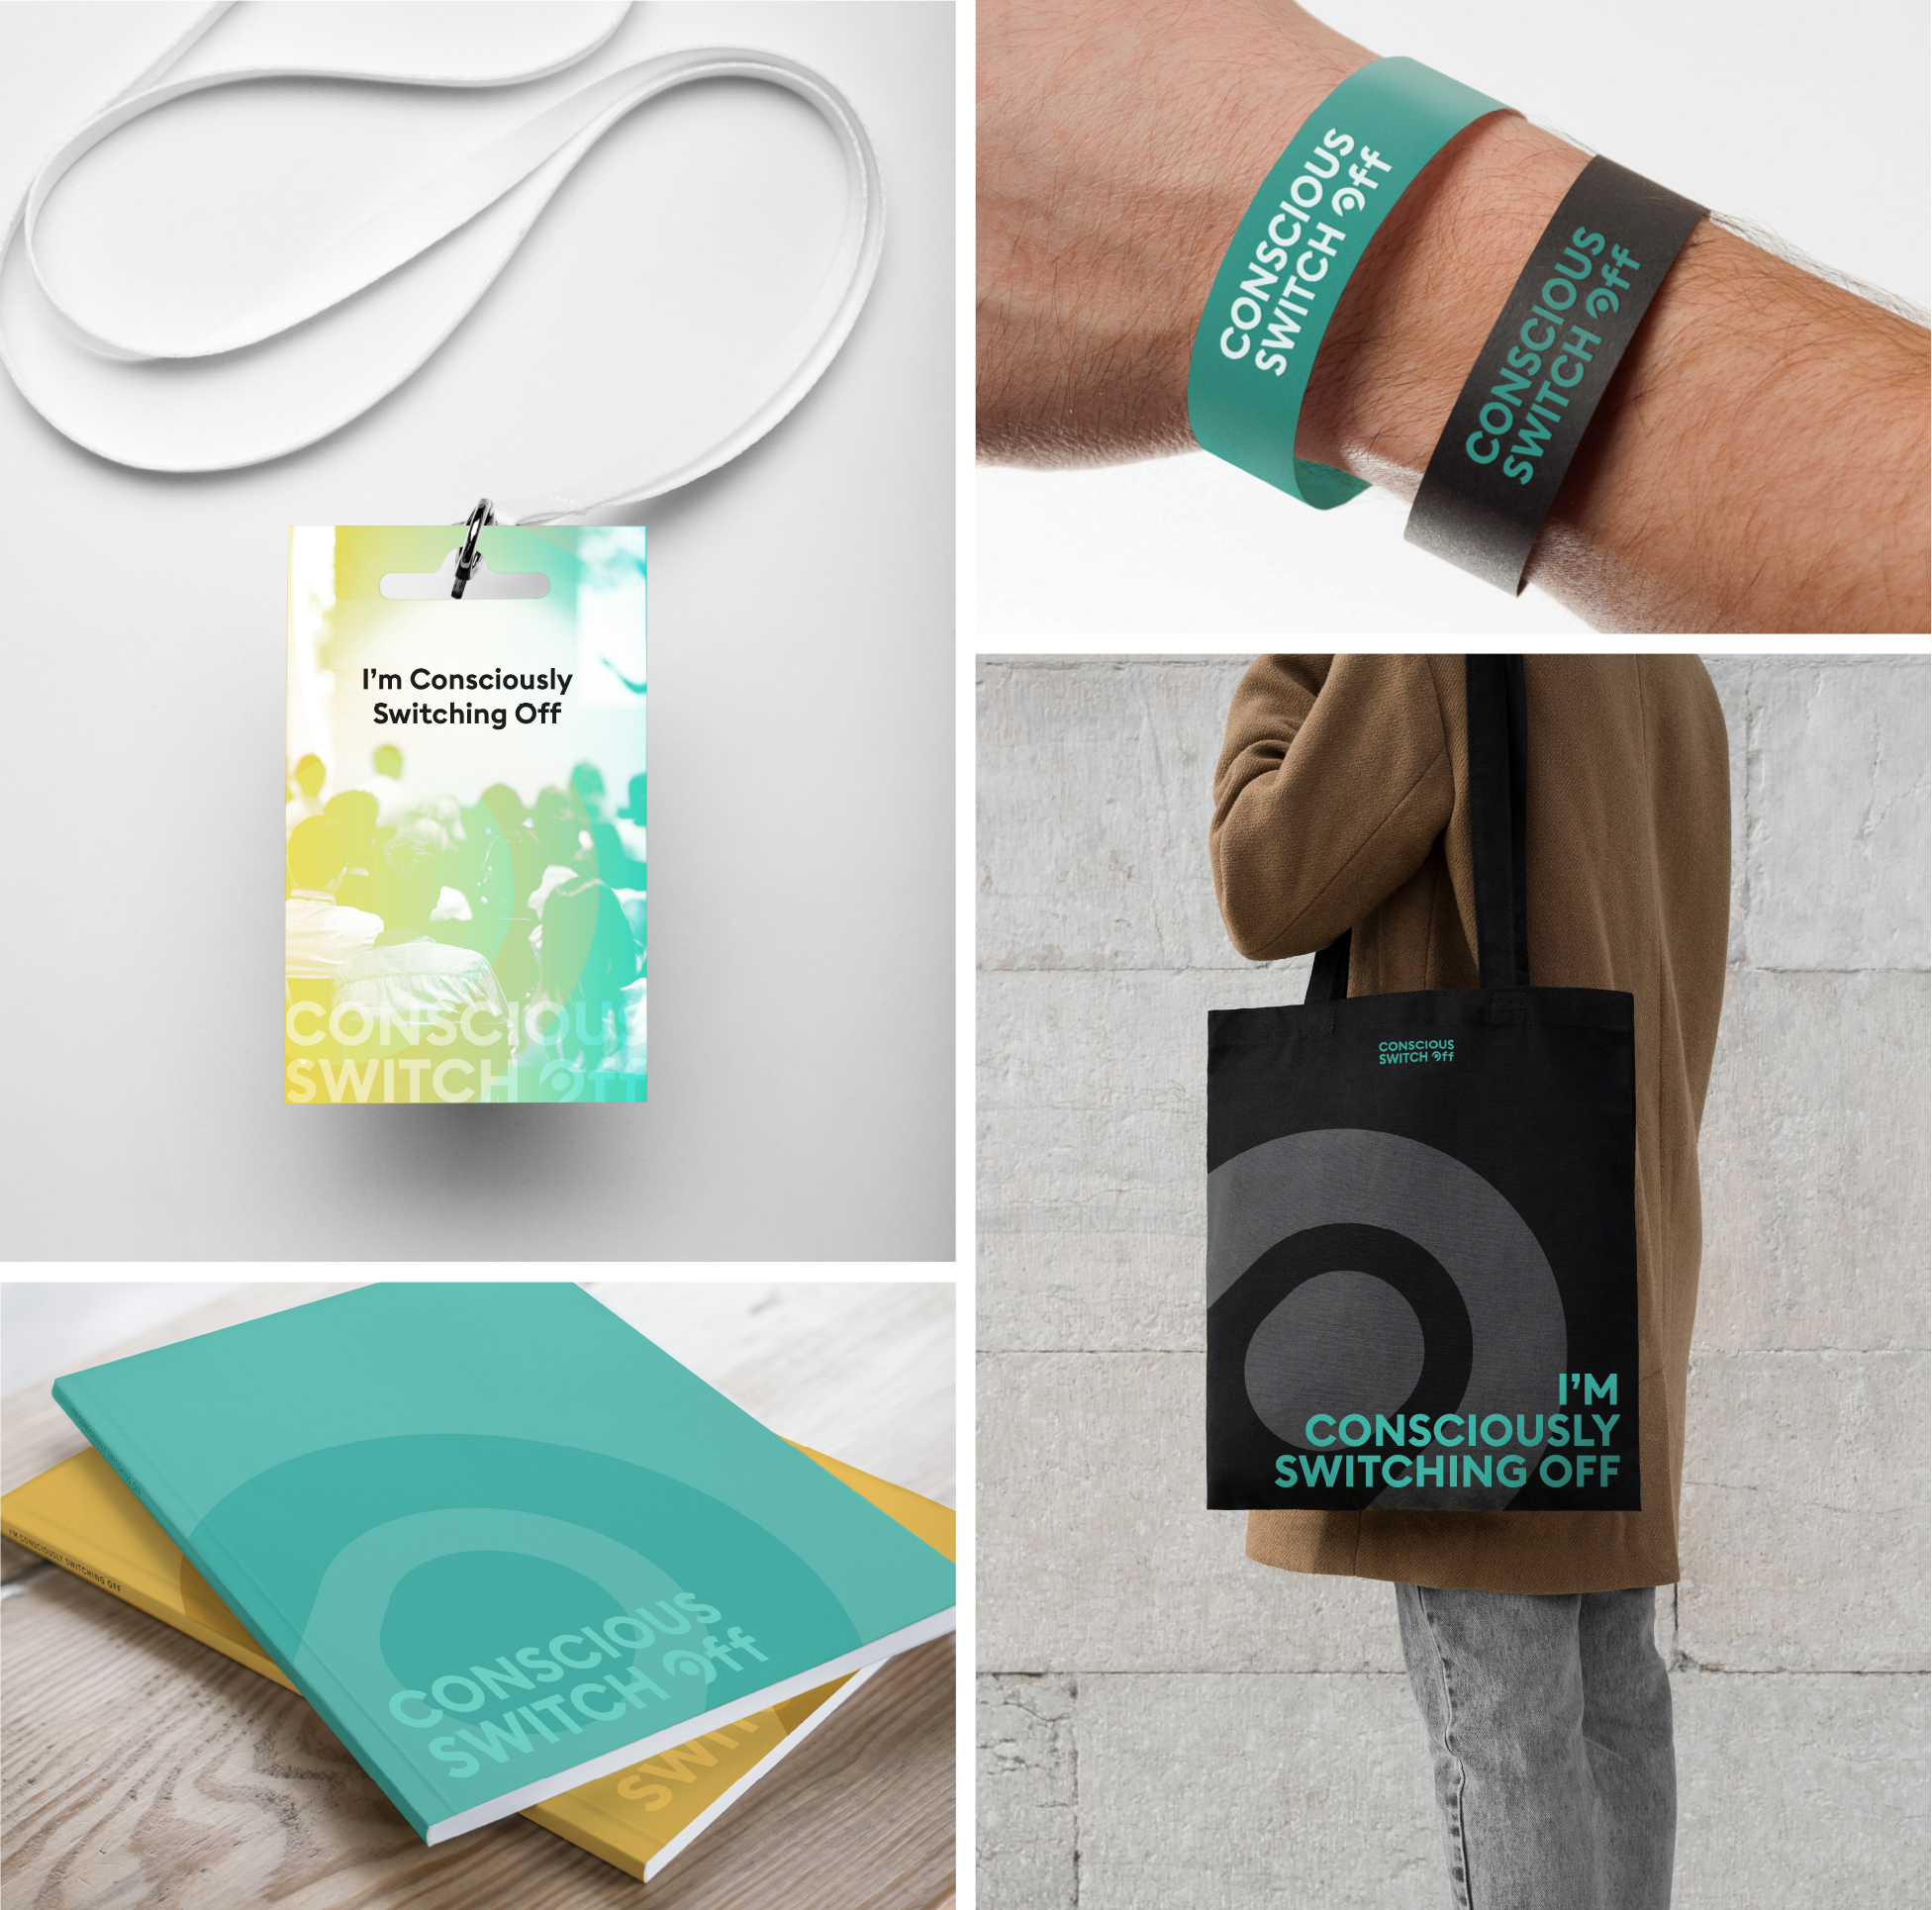 Promotional items for a wellbeing event - lanyards, wristbands, bags and booklets